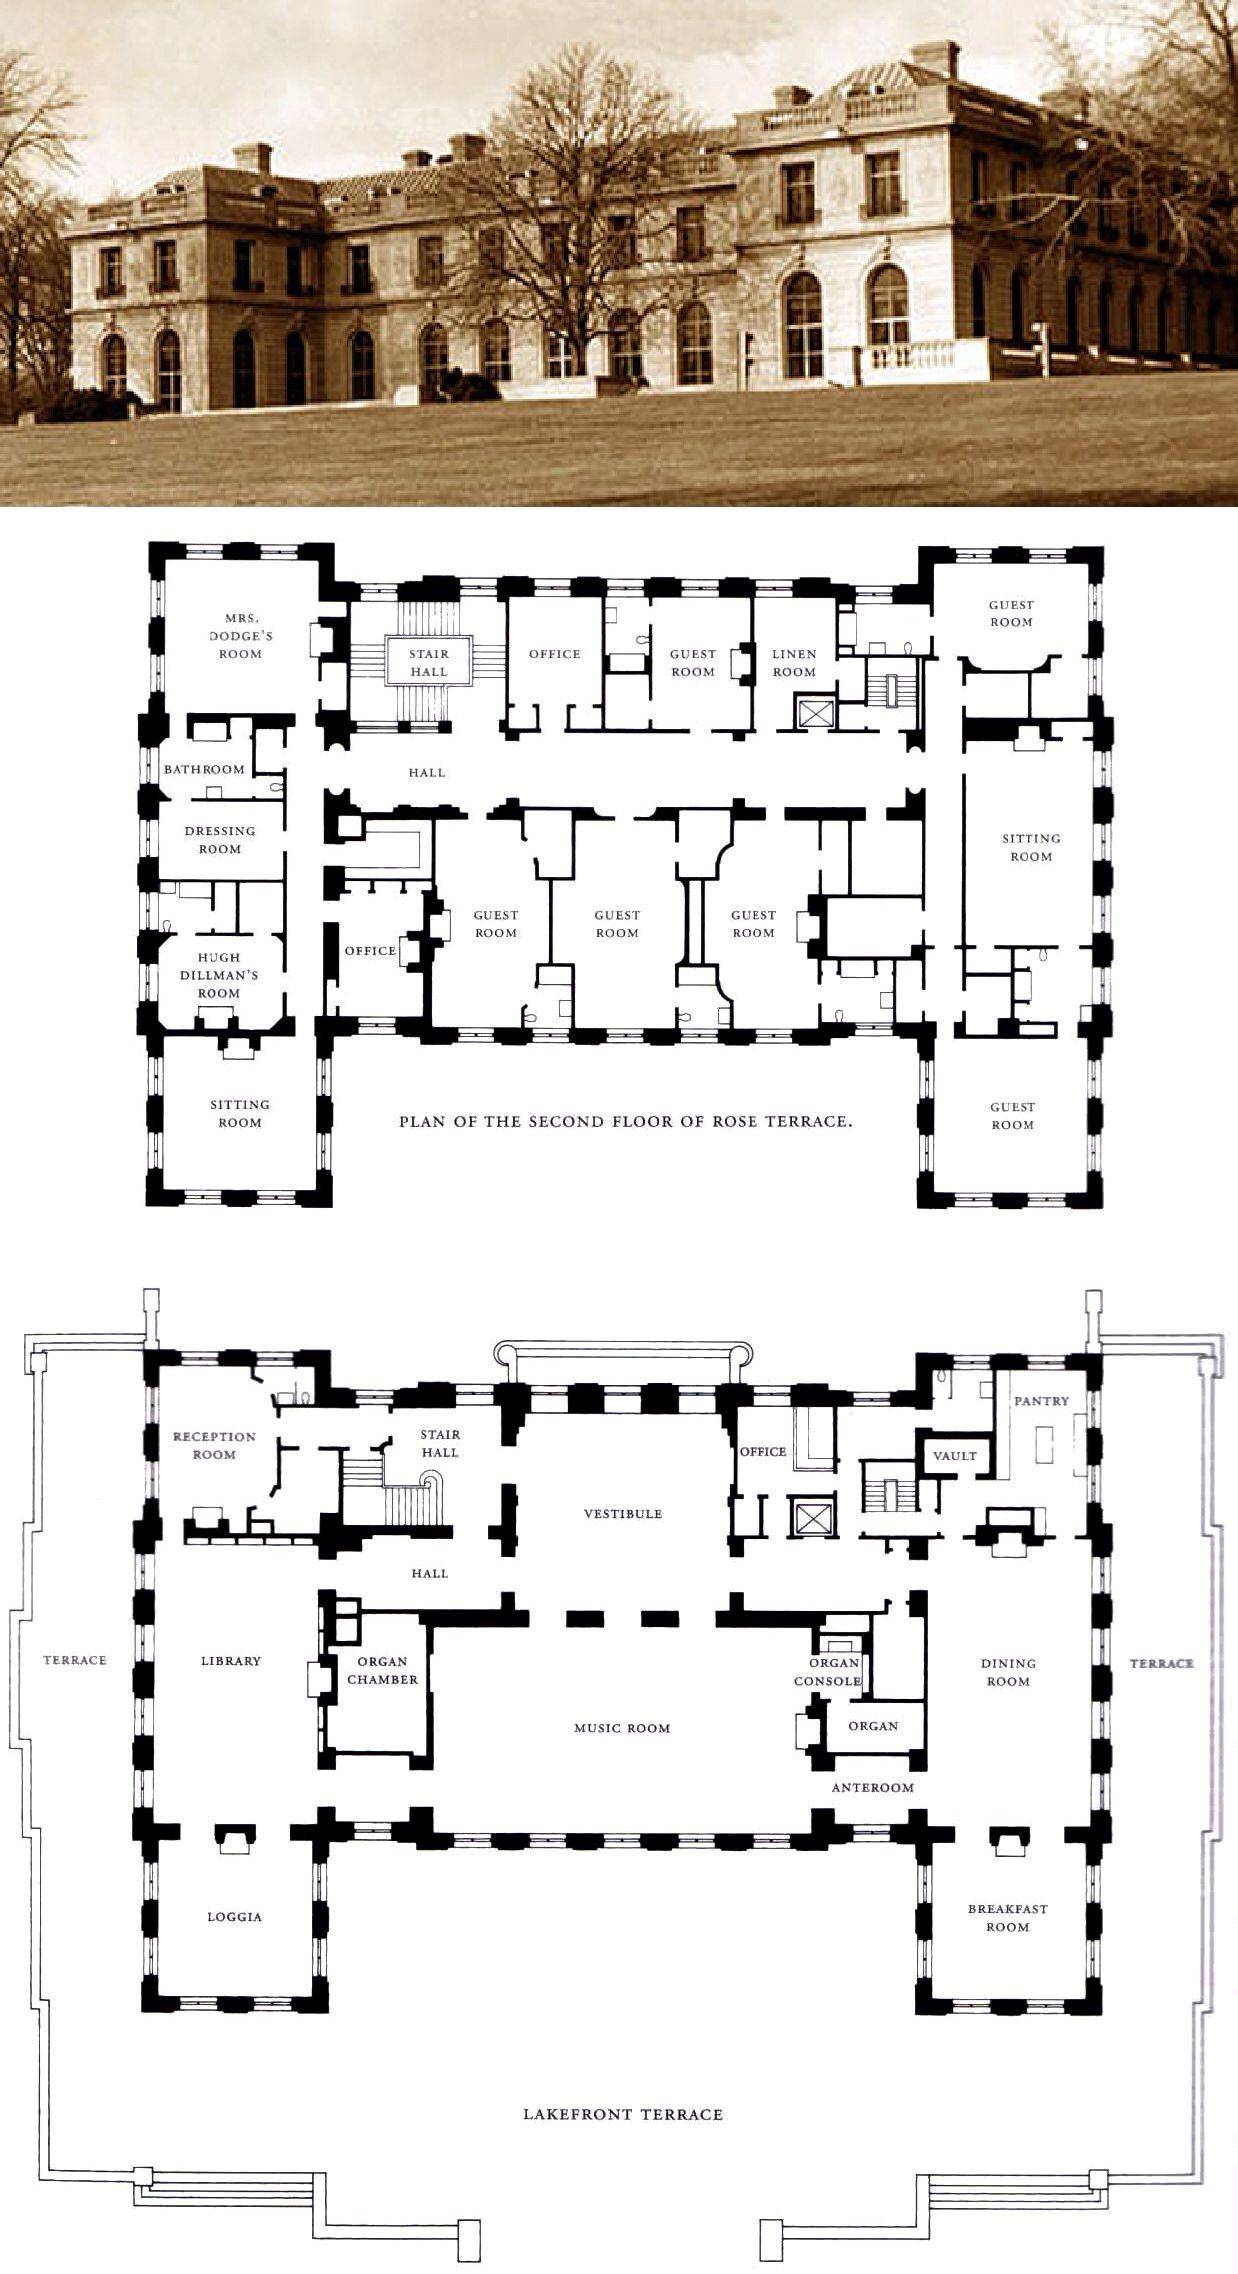 Trumbauer S Swan Song House Blueprints Mansion Plans Mansion